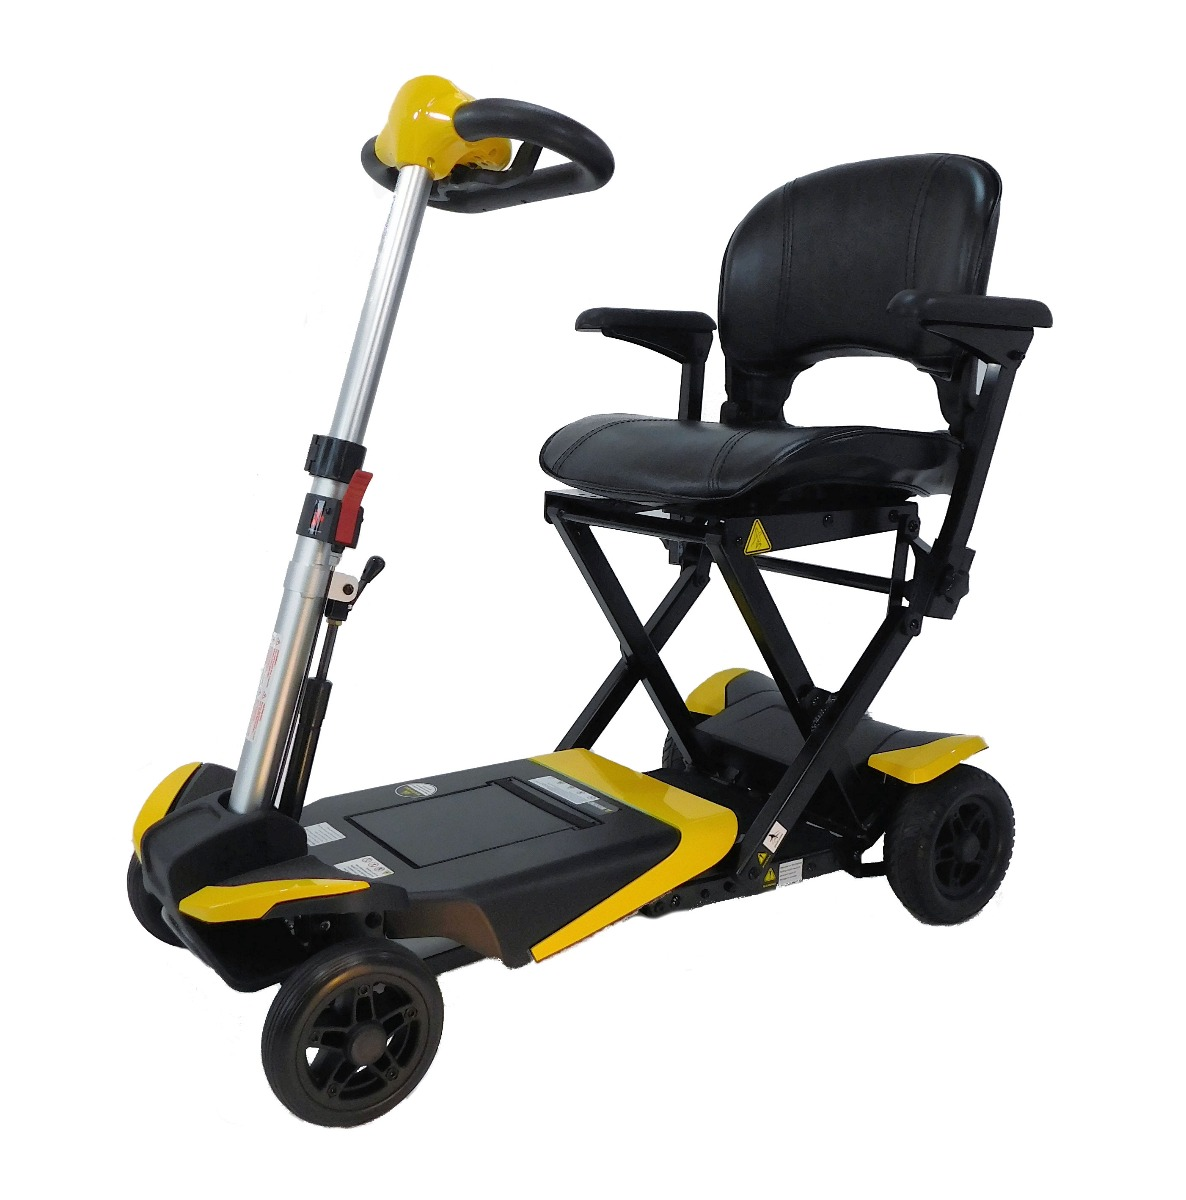 Enhance Mobility Transformer 4 Wheel Automatic Folding Mobility Scooter